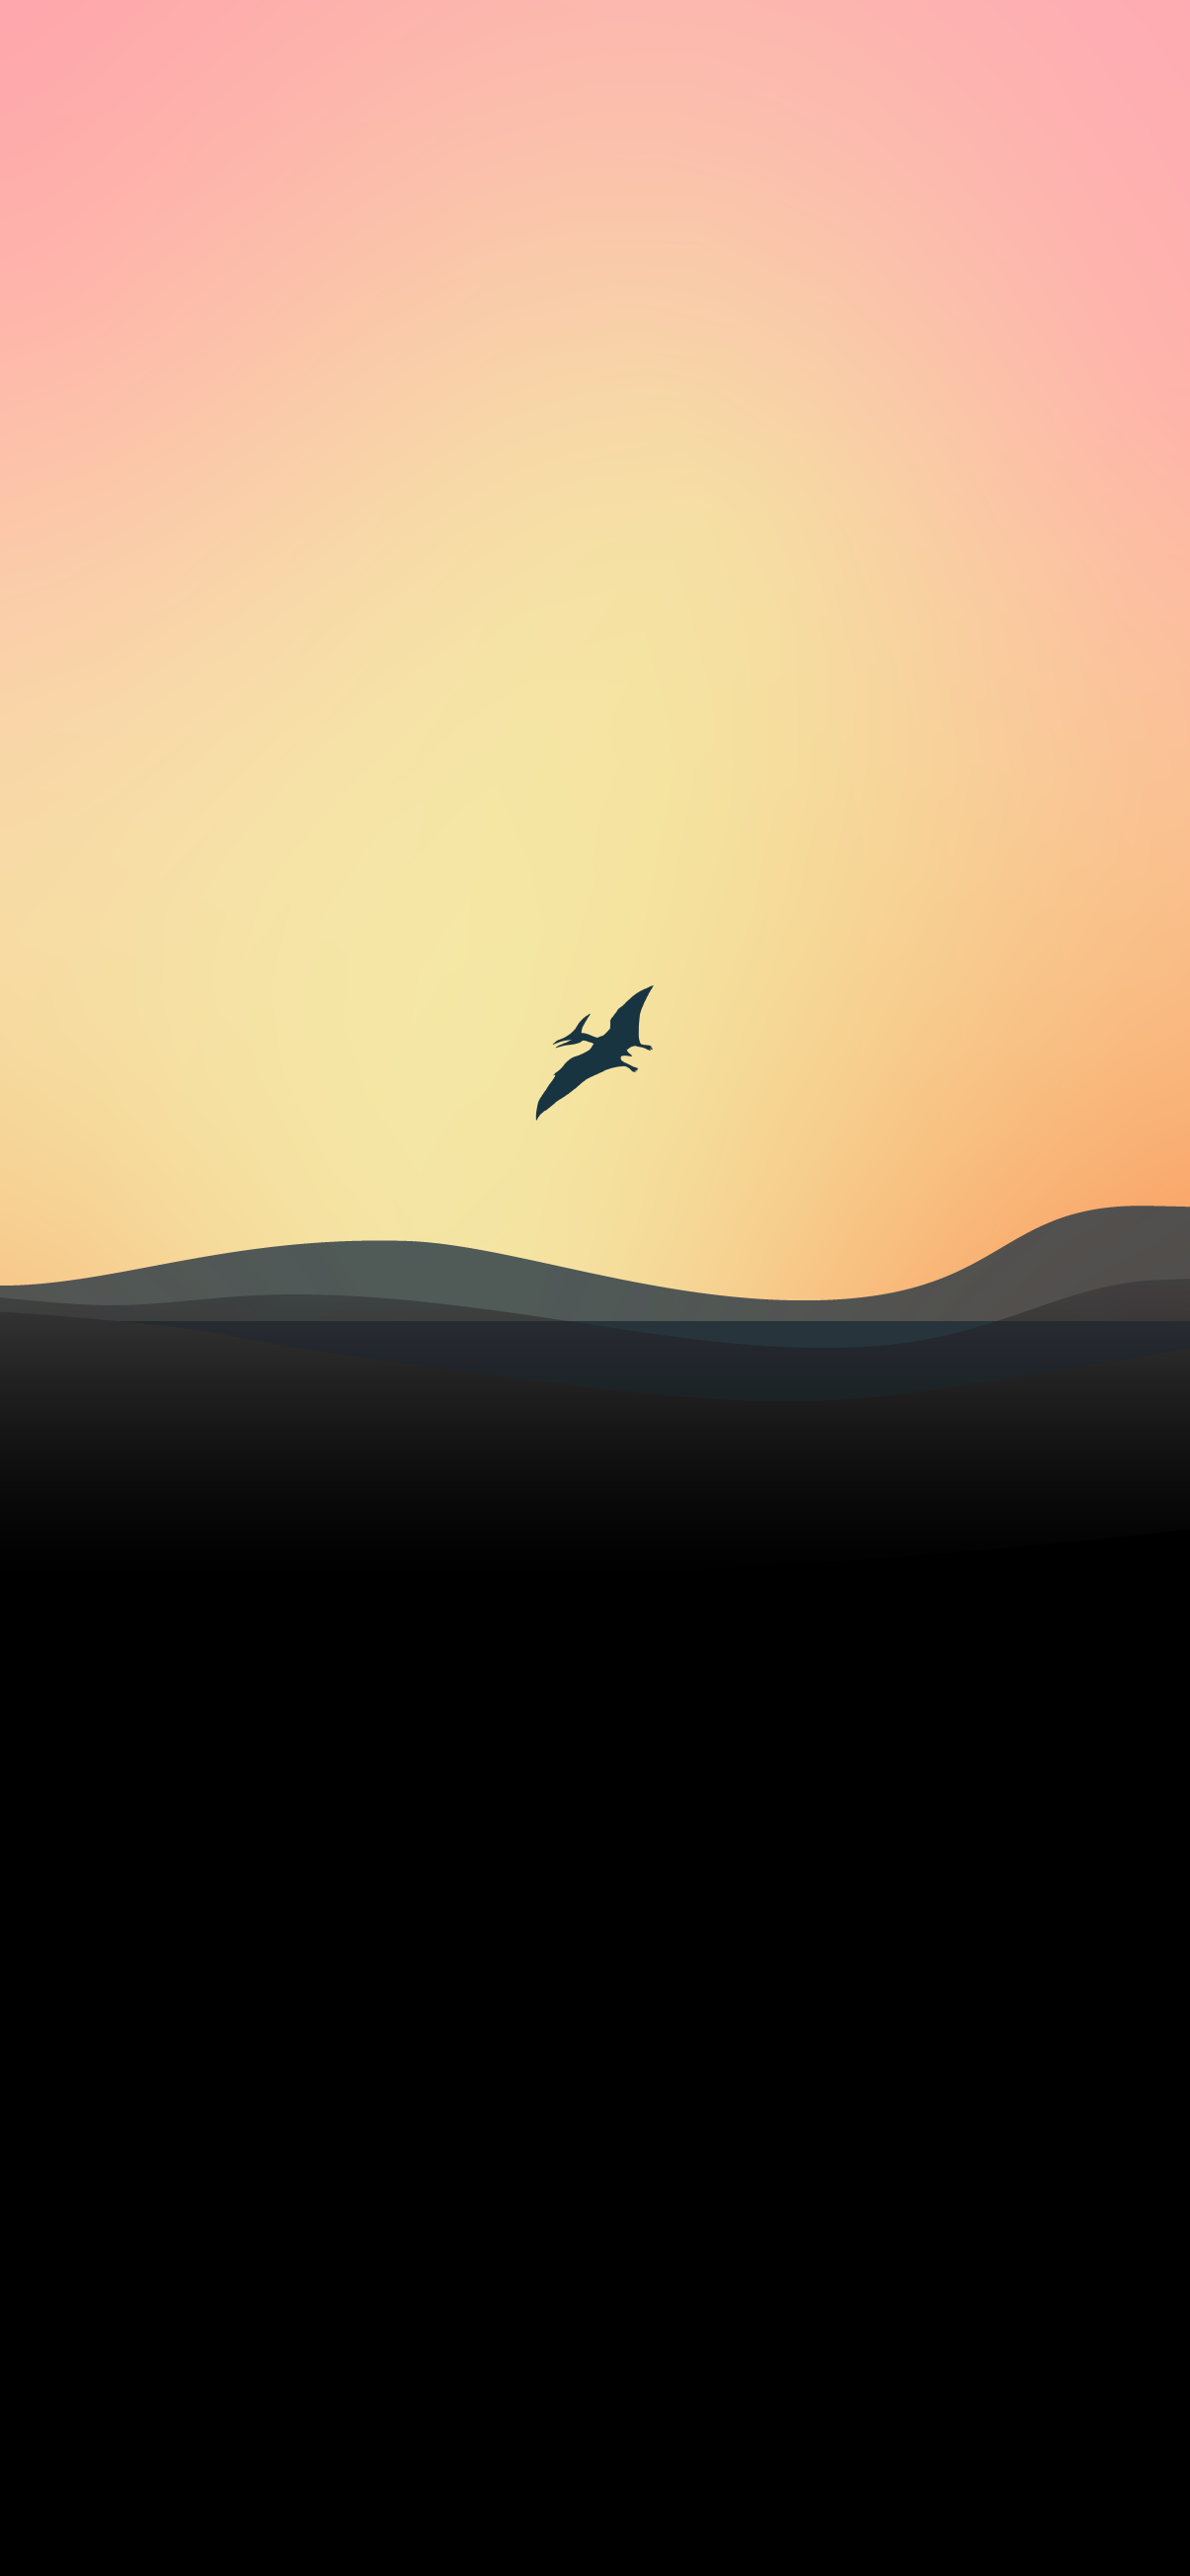 pterodactyl flying dinosaur background wallpaper minimalist for pc laptop macbook mac